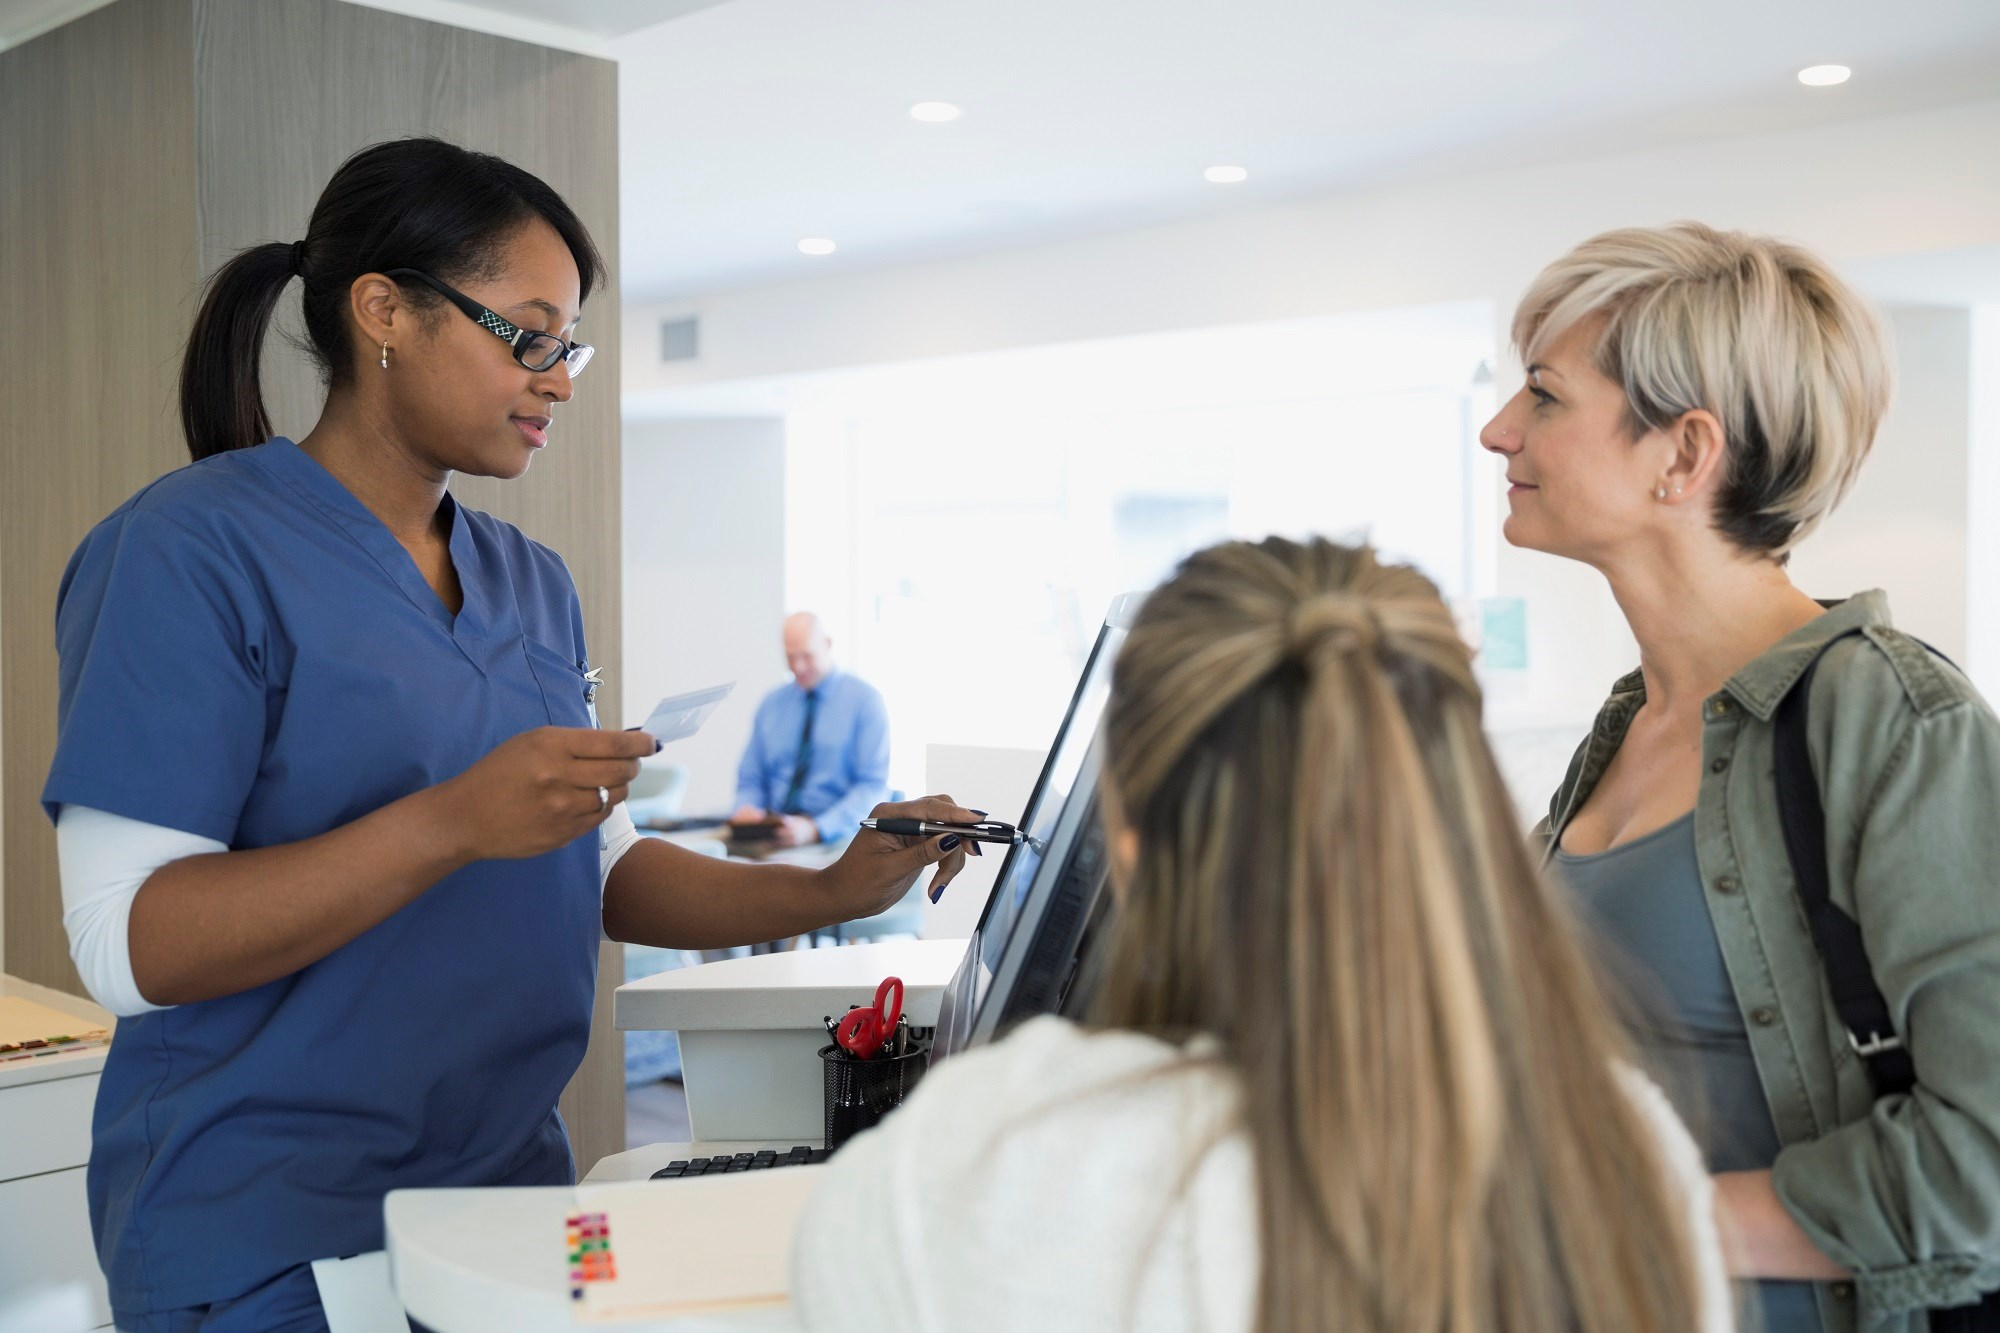 Allowing front desk staff adequate time and an uninterrupted environment to focus on billing can prevent problems later on.